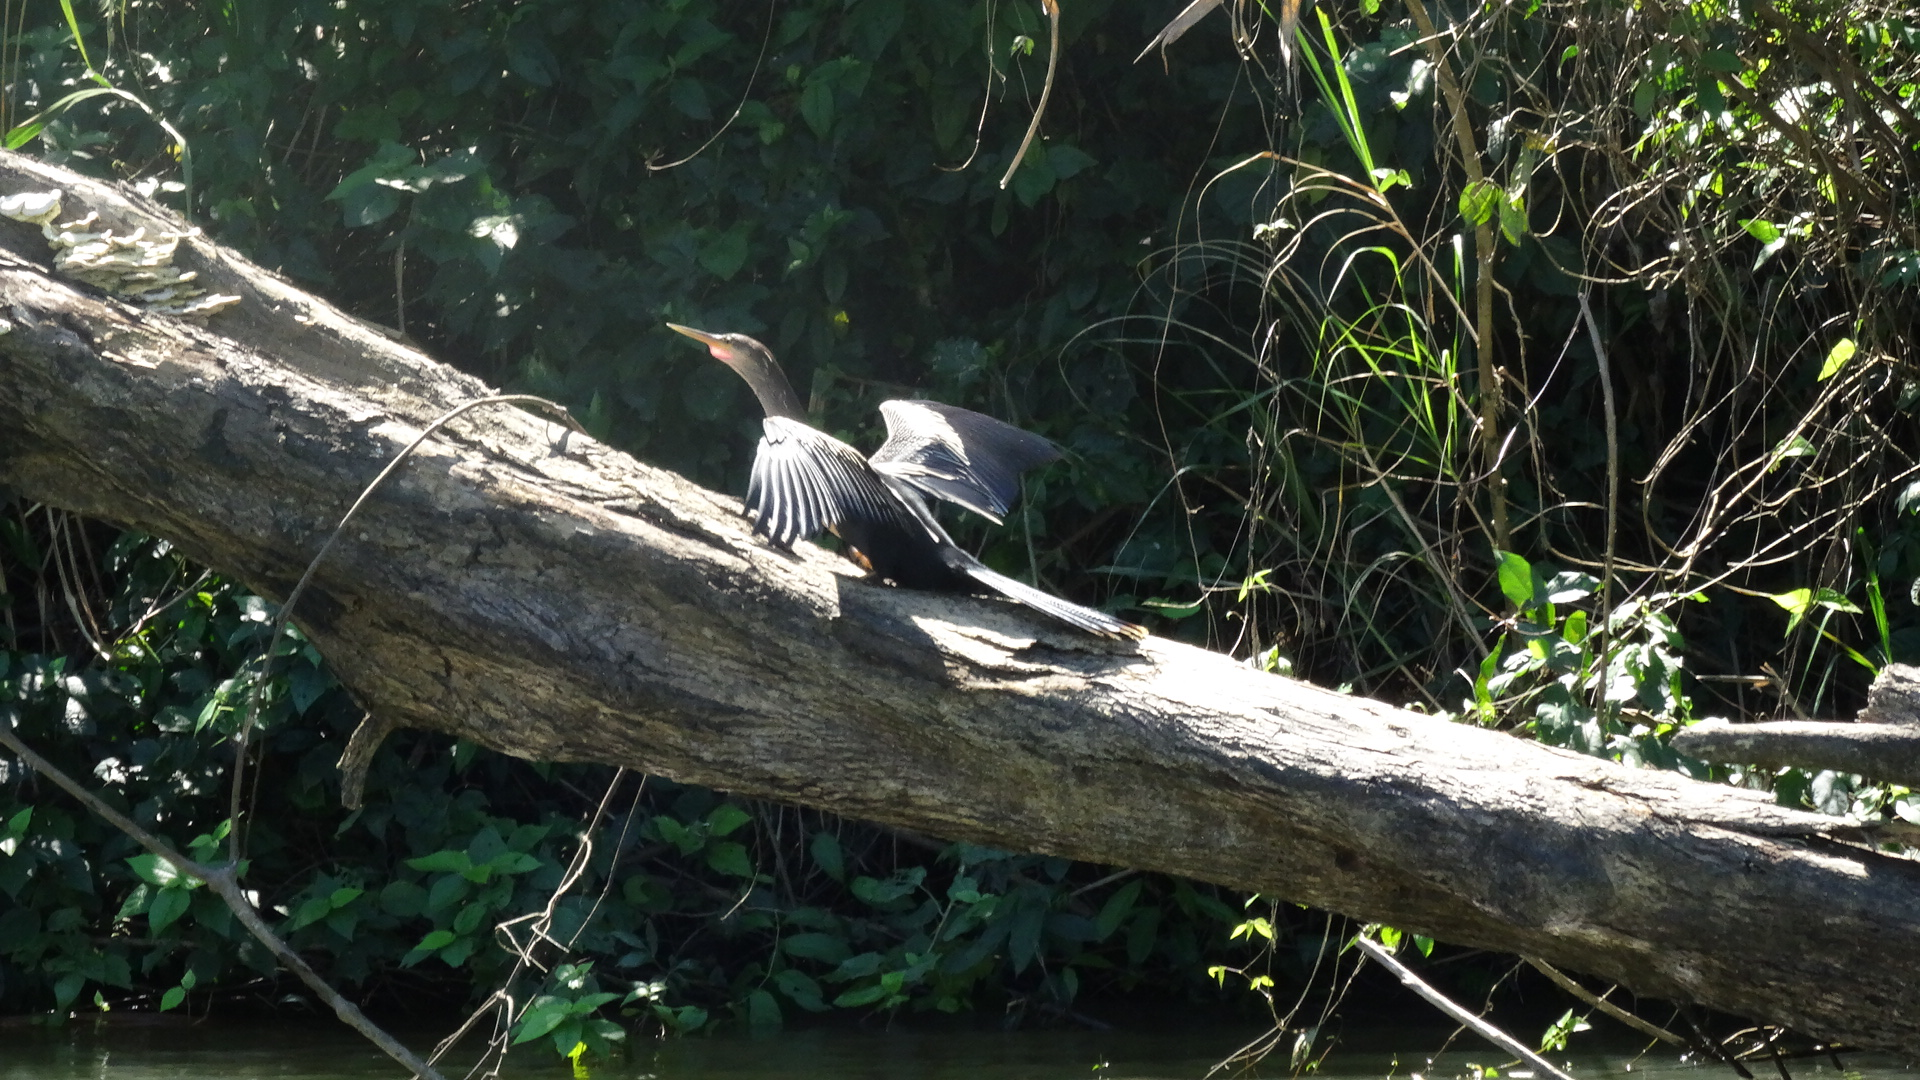 A River Bird Sunbathes On A Tree Trunk